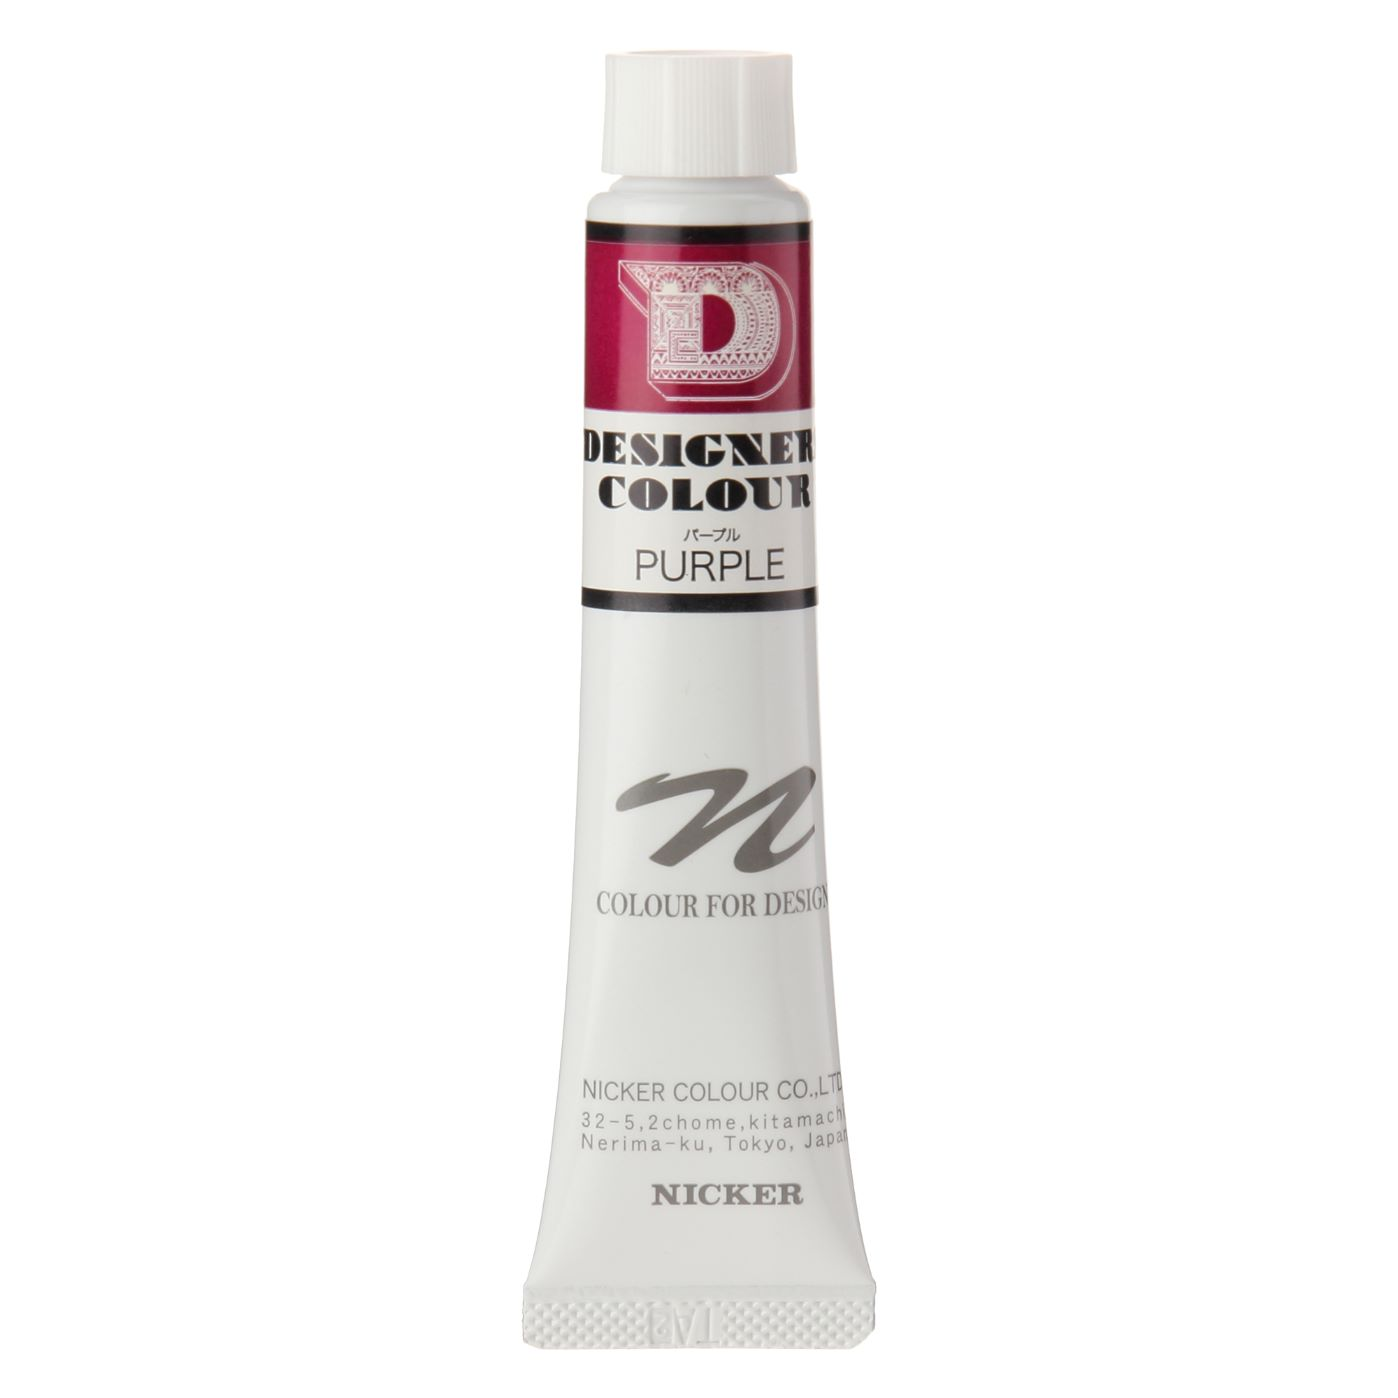 DESIGNERS COLOUR 20ml 529 PURPLE